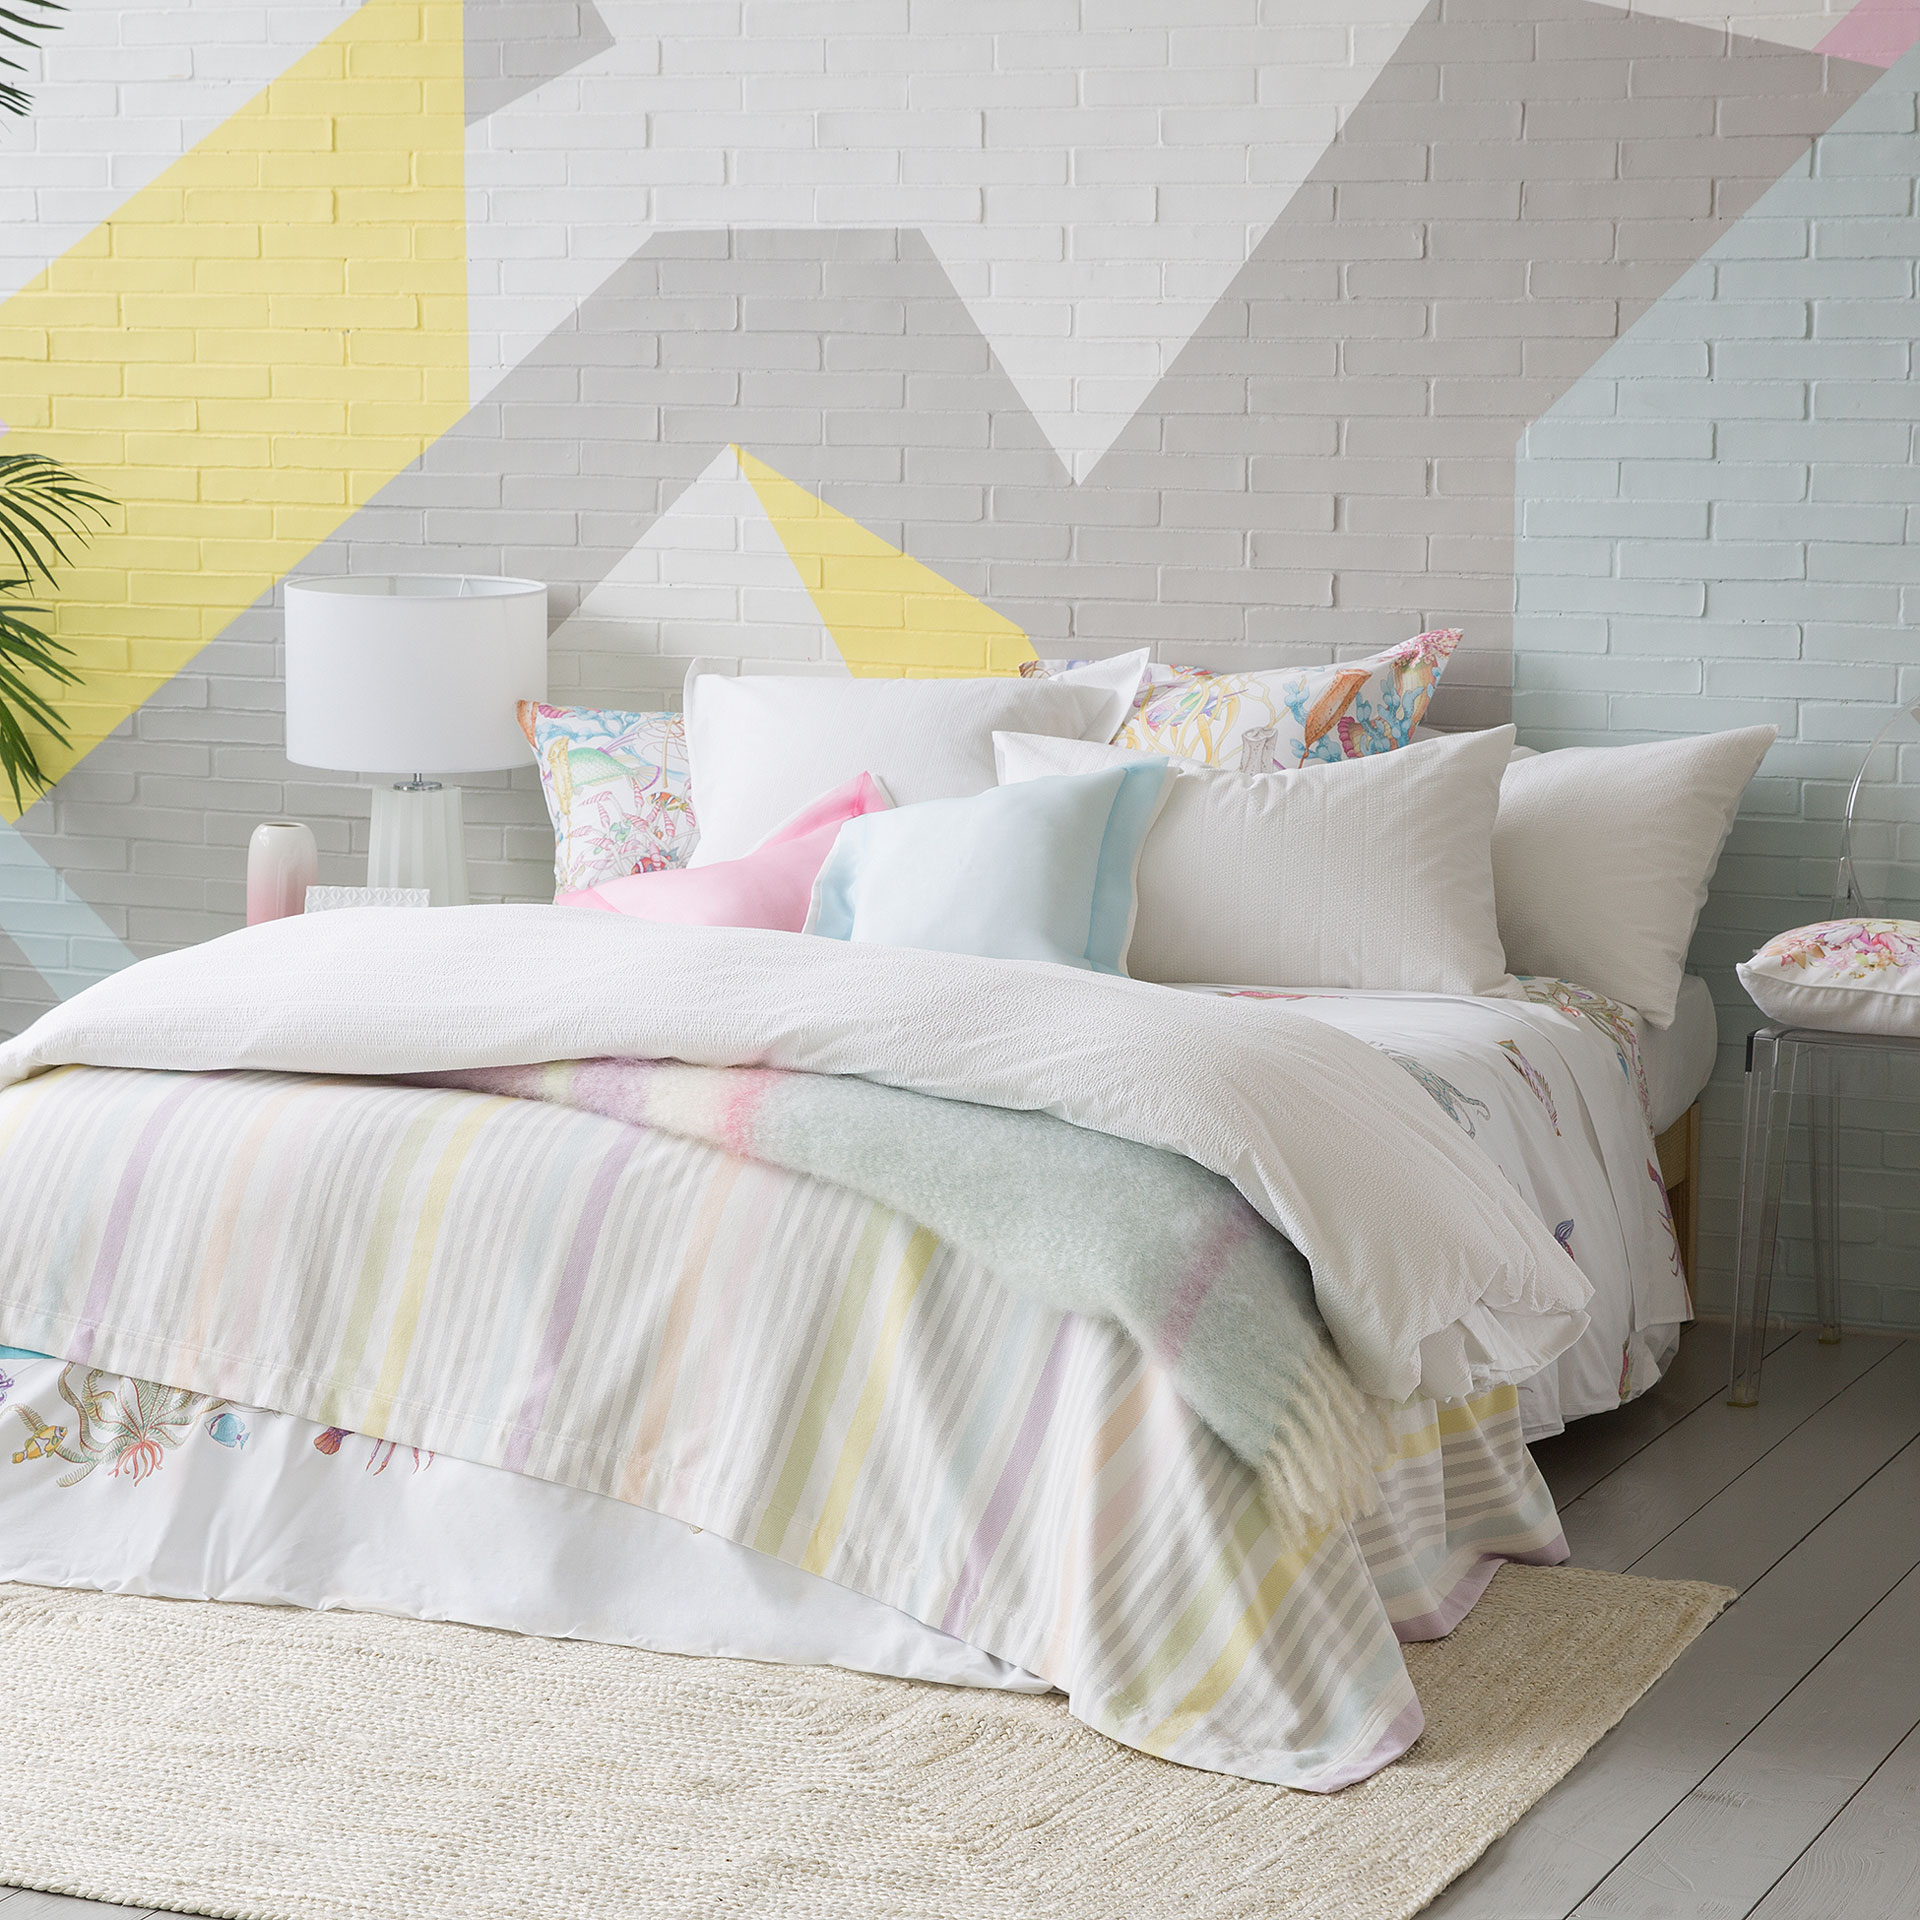 Zara Cotton Bedspread.jpg